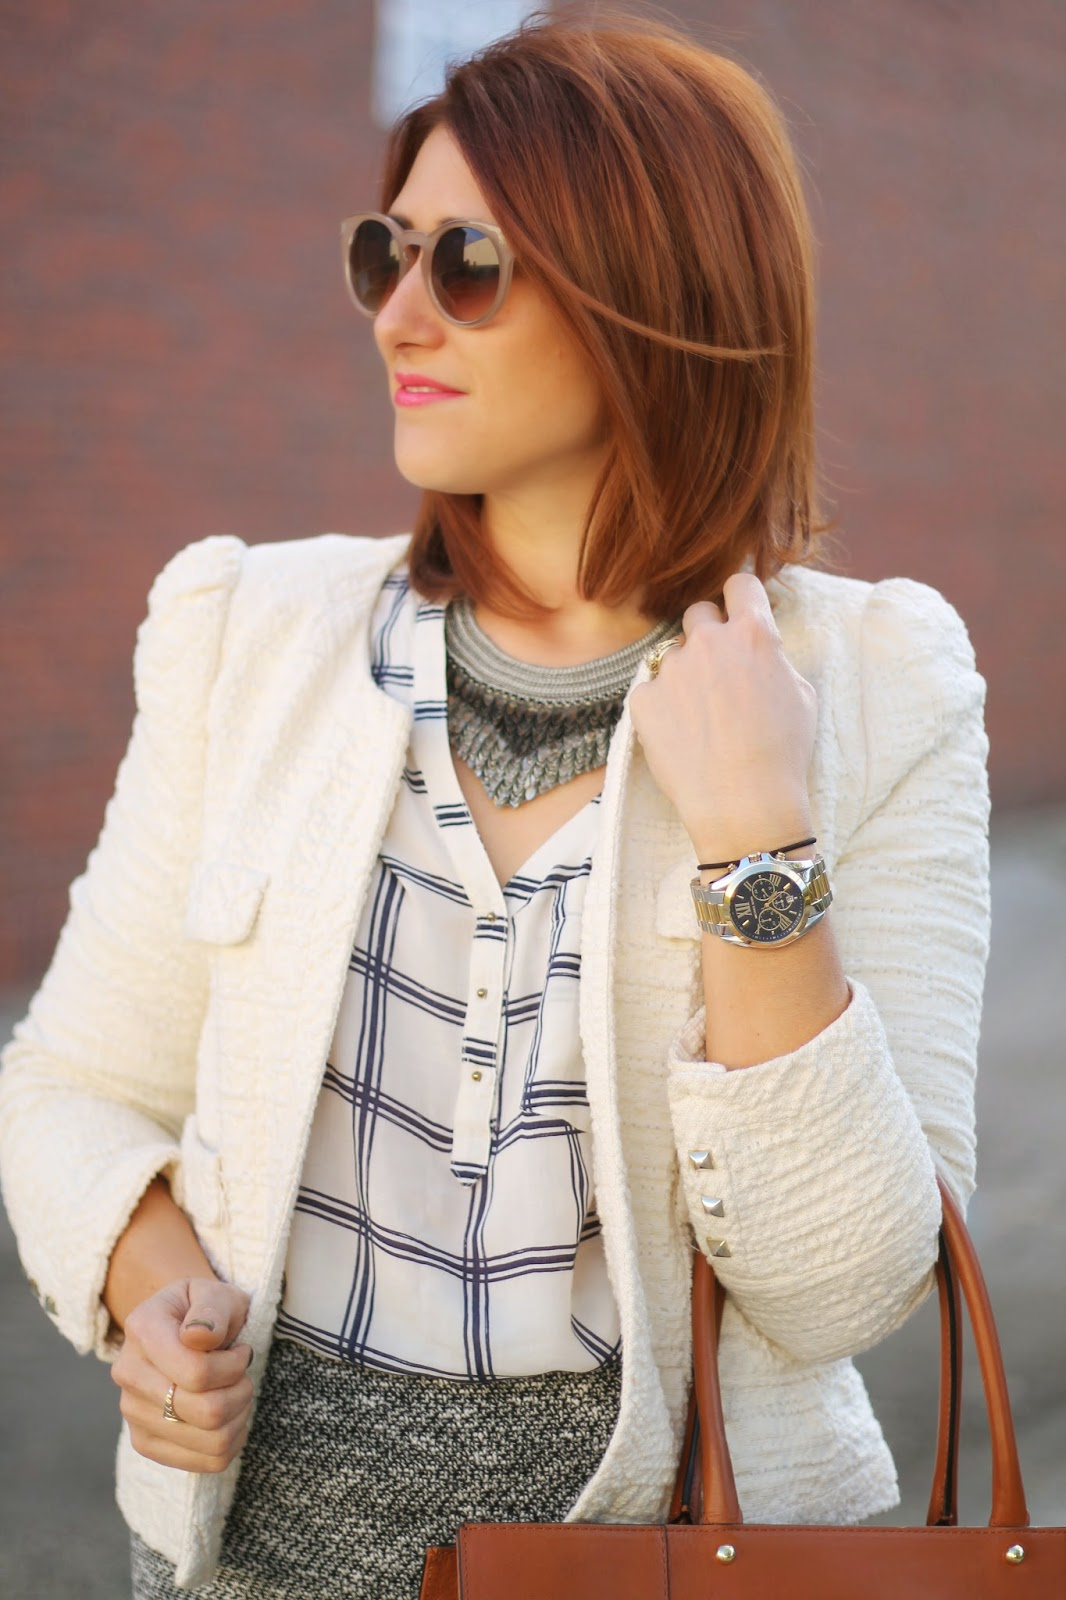 loft, metallic, leaf, necklace, bradshaw, michael, kors, watch